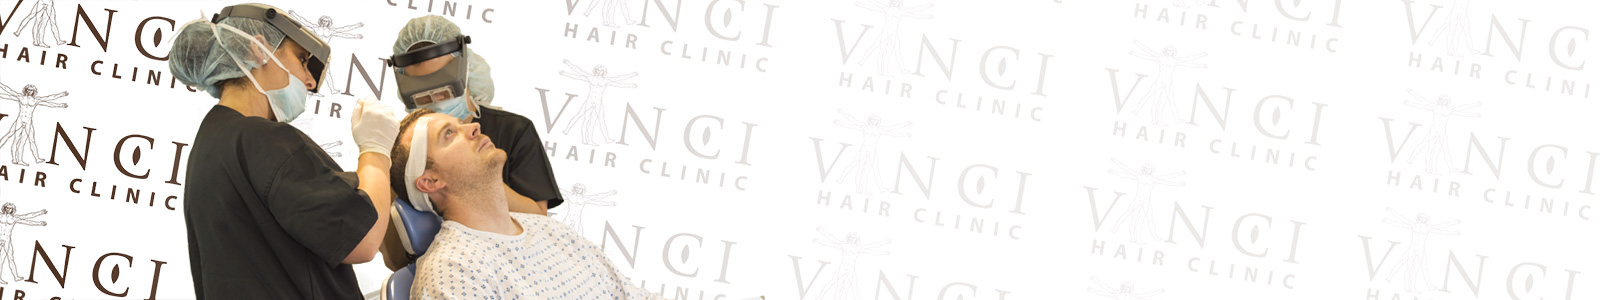 medical-hair-clinic